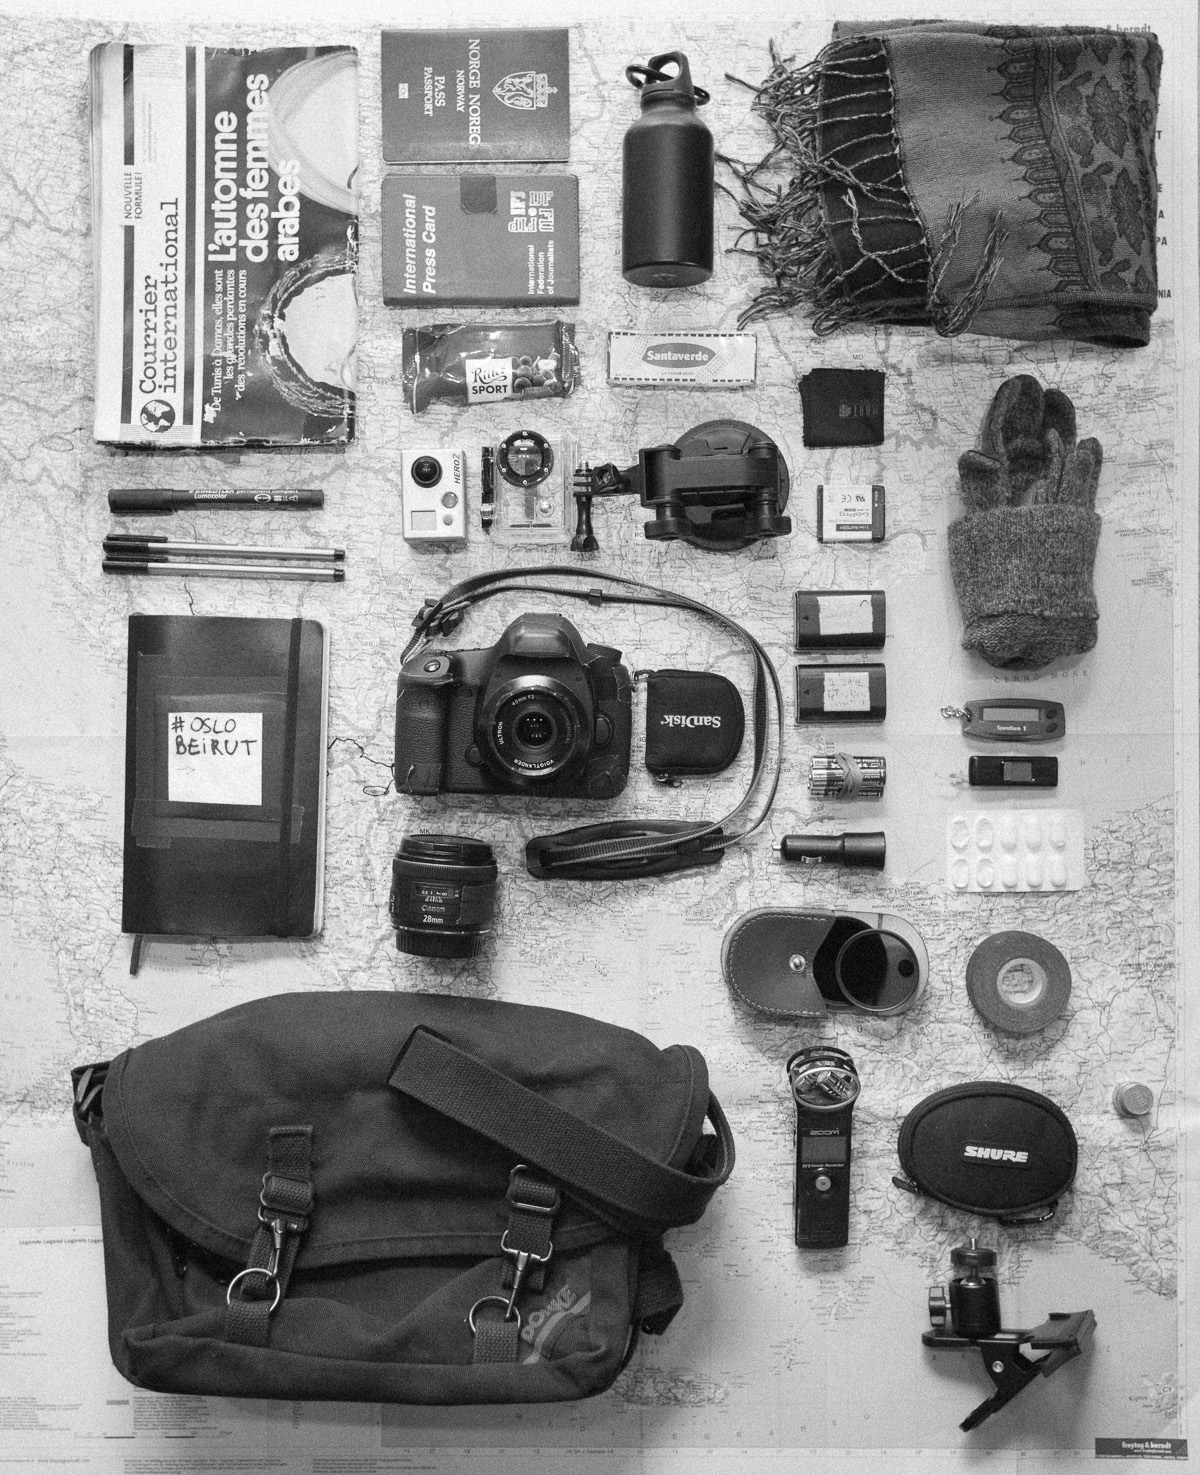 Here's what I'm carrying around in my handbag these days.    Courrier International, presscard, passport, water, scarf, chocolate, plaster, microfiber cloth, marker and pens, go pro hero 2 + suction mount and spare battery, gloves, travel diary / notebook, Canon 5Dmk3 + memory cards + 2 batteries + 40mm lens + 28mm lens, AA batteries, bank thing, USB key, painkillers, car charger for cellphone, filters in a box, gaffer tape, sound recording device, earphones, coins, ballhead clamp for camera, map of Eastern Europe and Turkey. Wallet and cellphone are in jeans pockets.  (DOMKE F6)   #insidemybag by  Sébastian Dahl  on  Angles